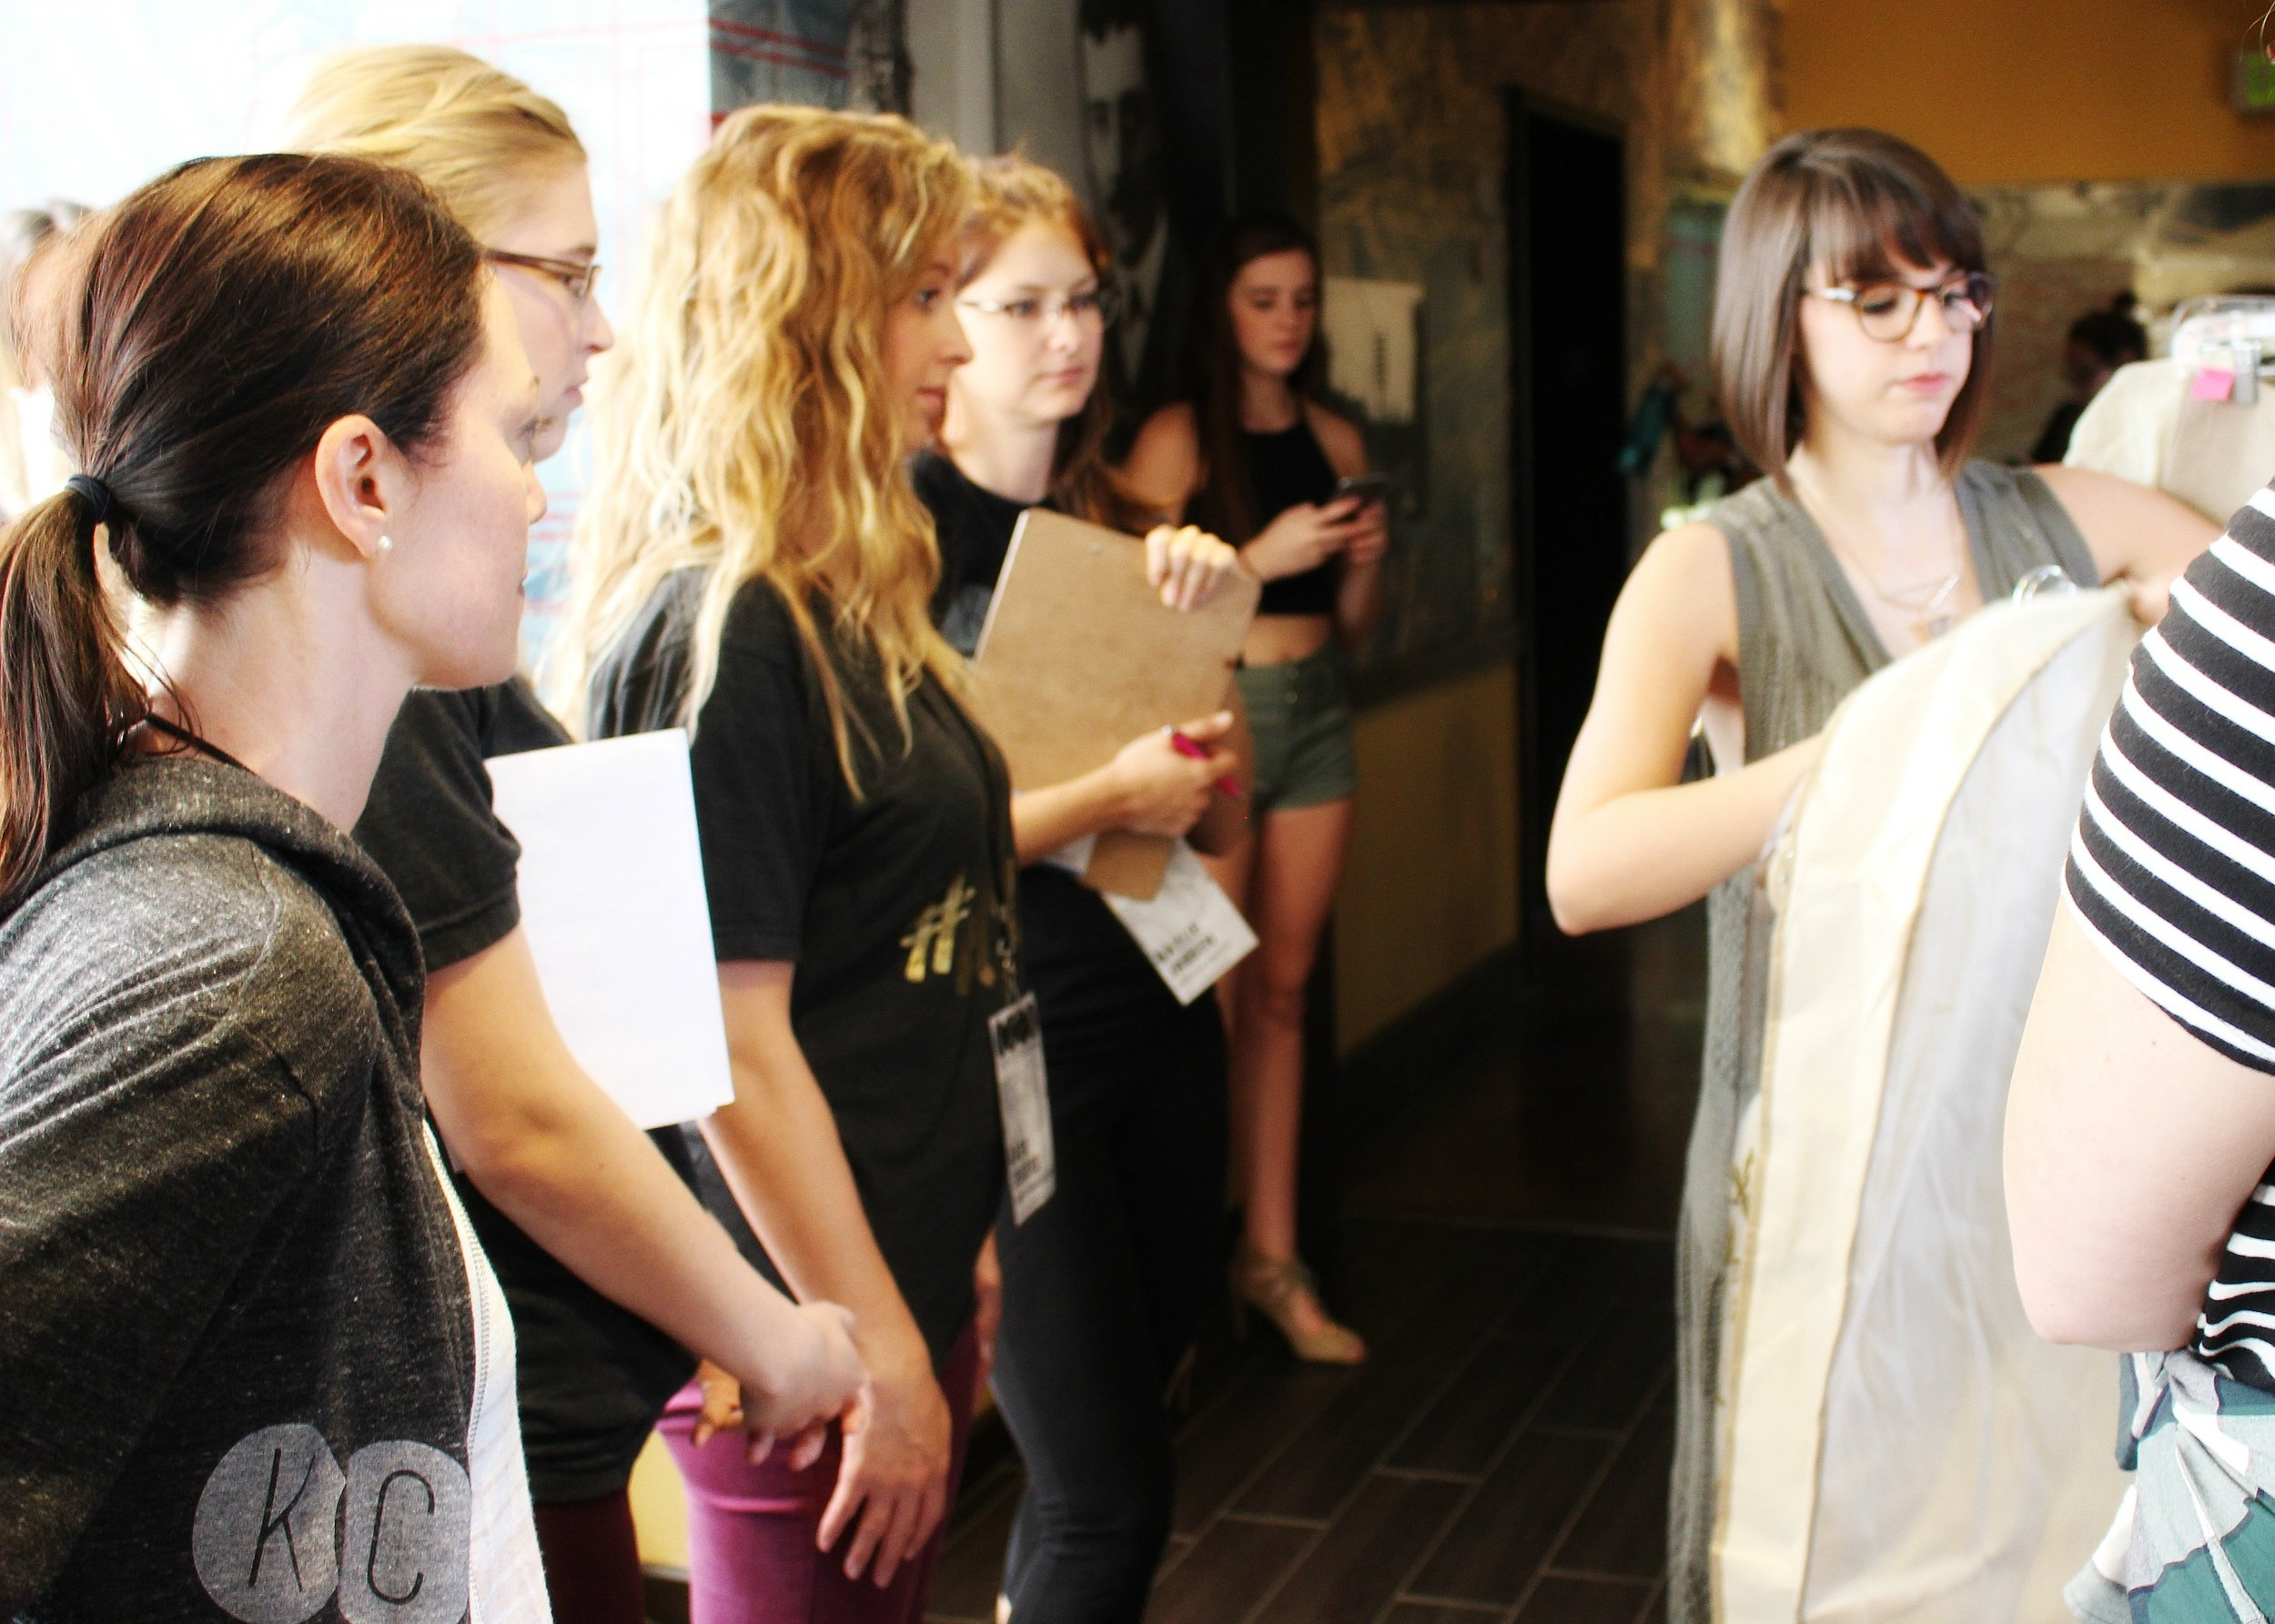 Designer Sara Kahrs shows her collection to the KCFW committee during rack checks.